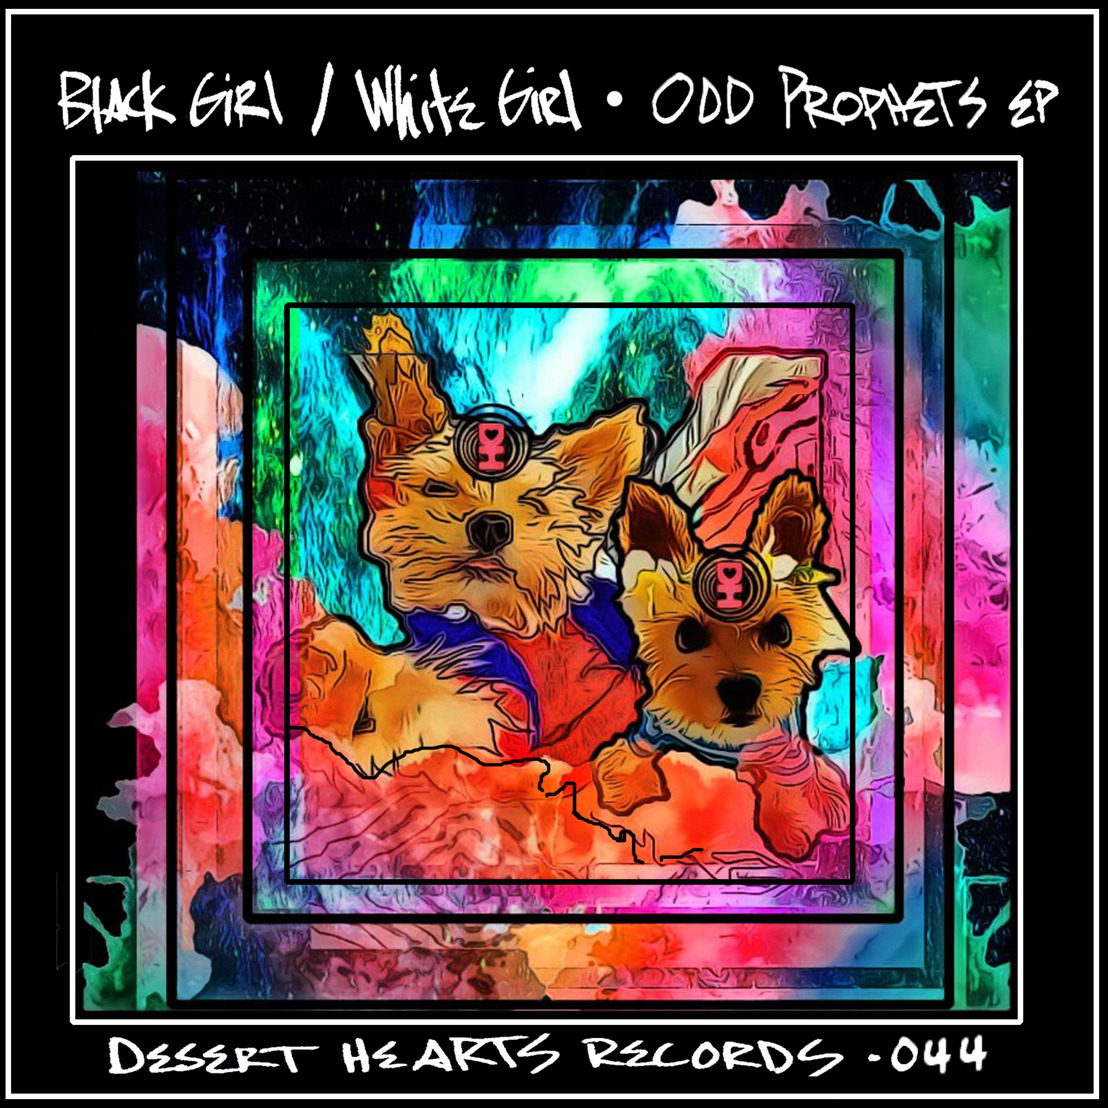 Black Girl / White Girl Join Desert Hearts Records with oDD pROPHETS EP